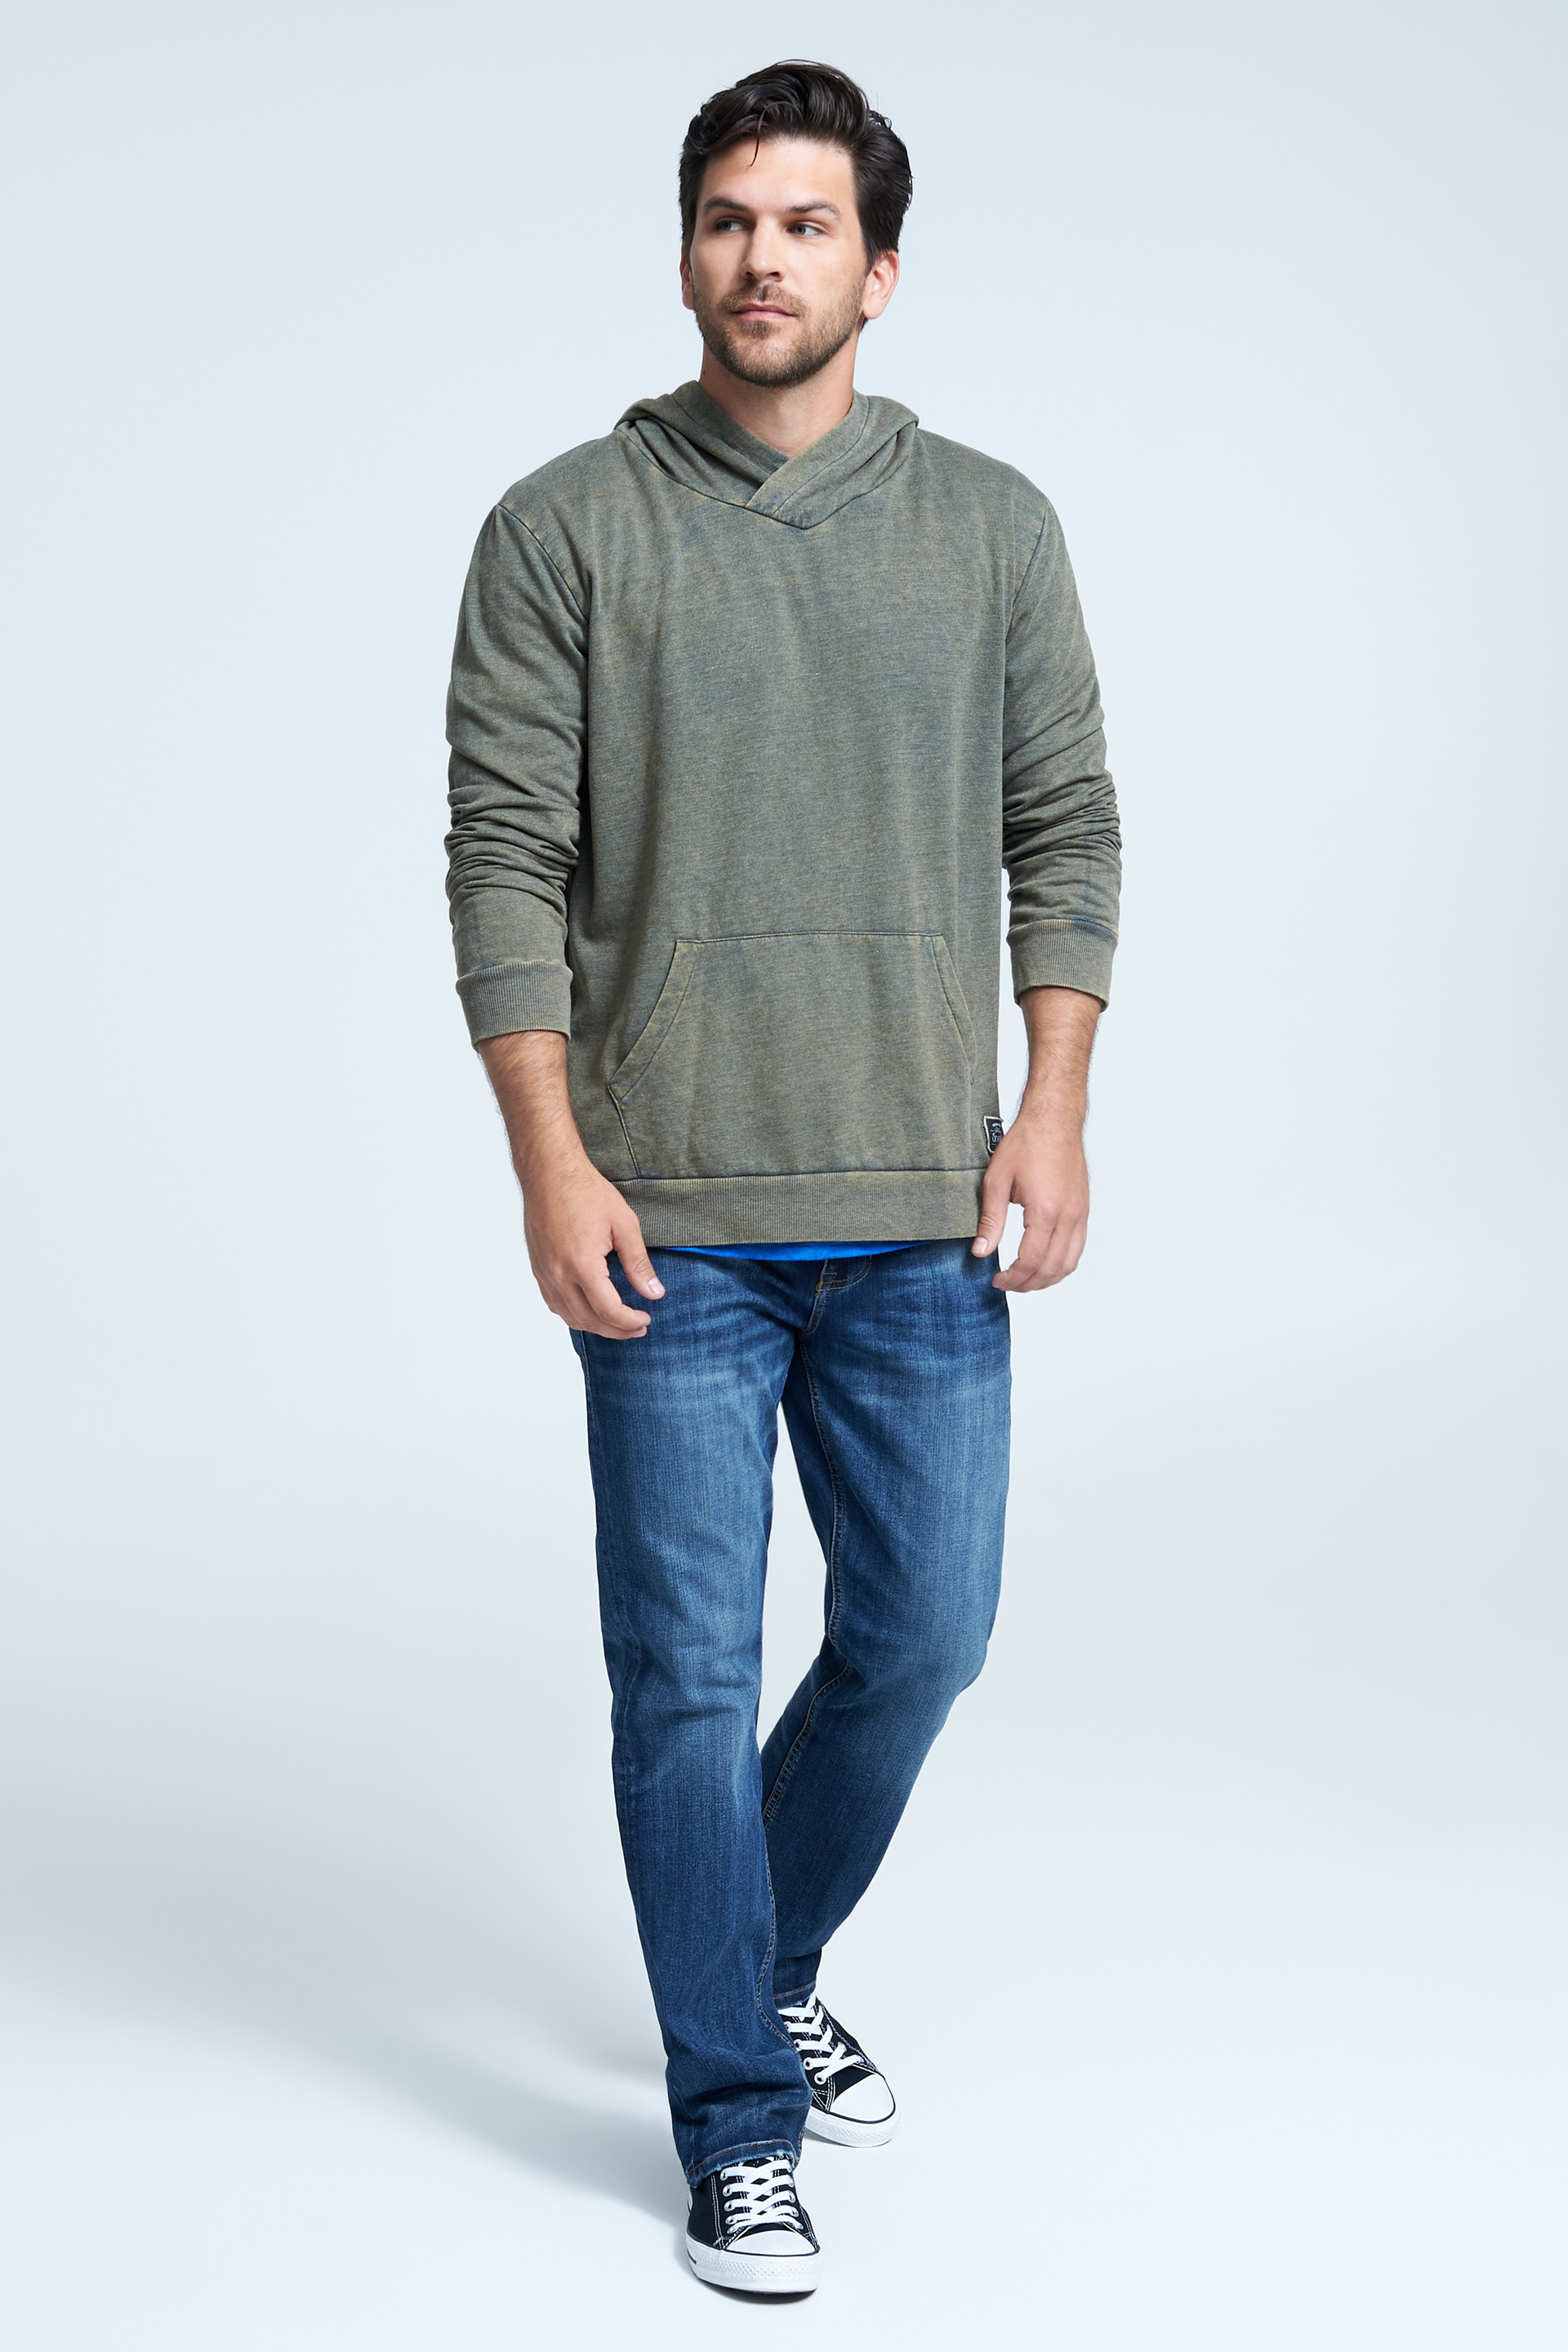 Seven7 Jeans Lightweight Fleece Hooded Tee  <p>Made from feel-good triblend fleece, this hoodie features an easygoing fit with a cozy kanga pocket. The perfect addition to any casual wardrobe.</p>